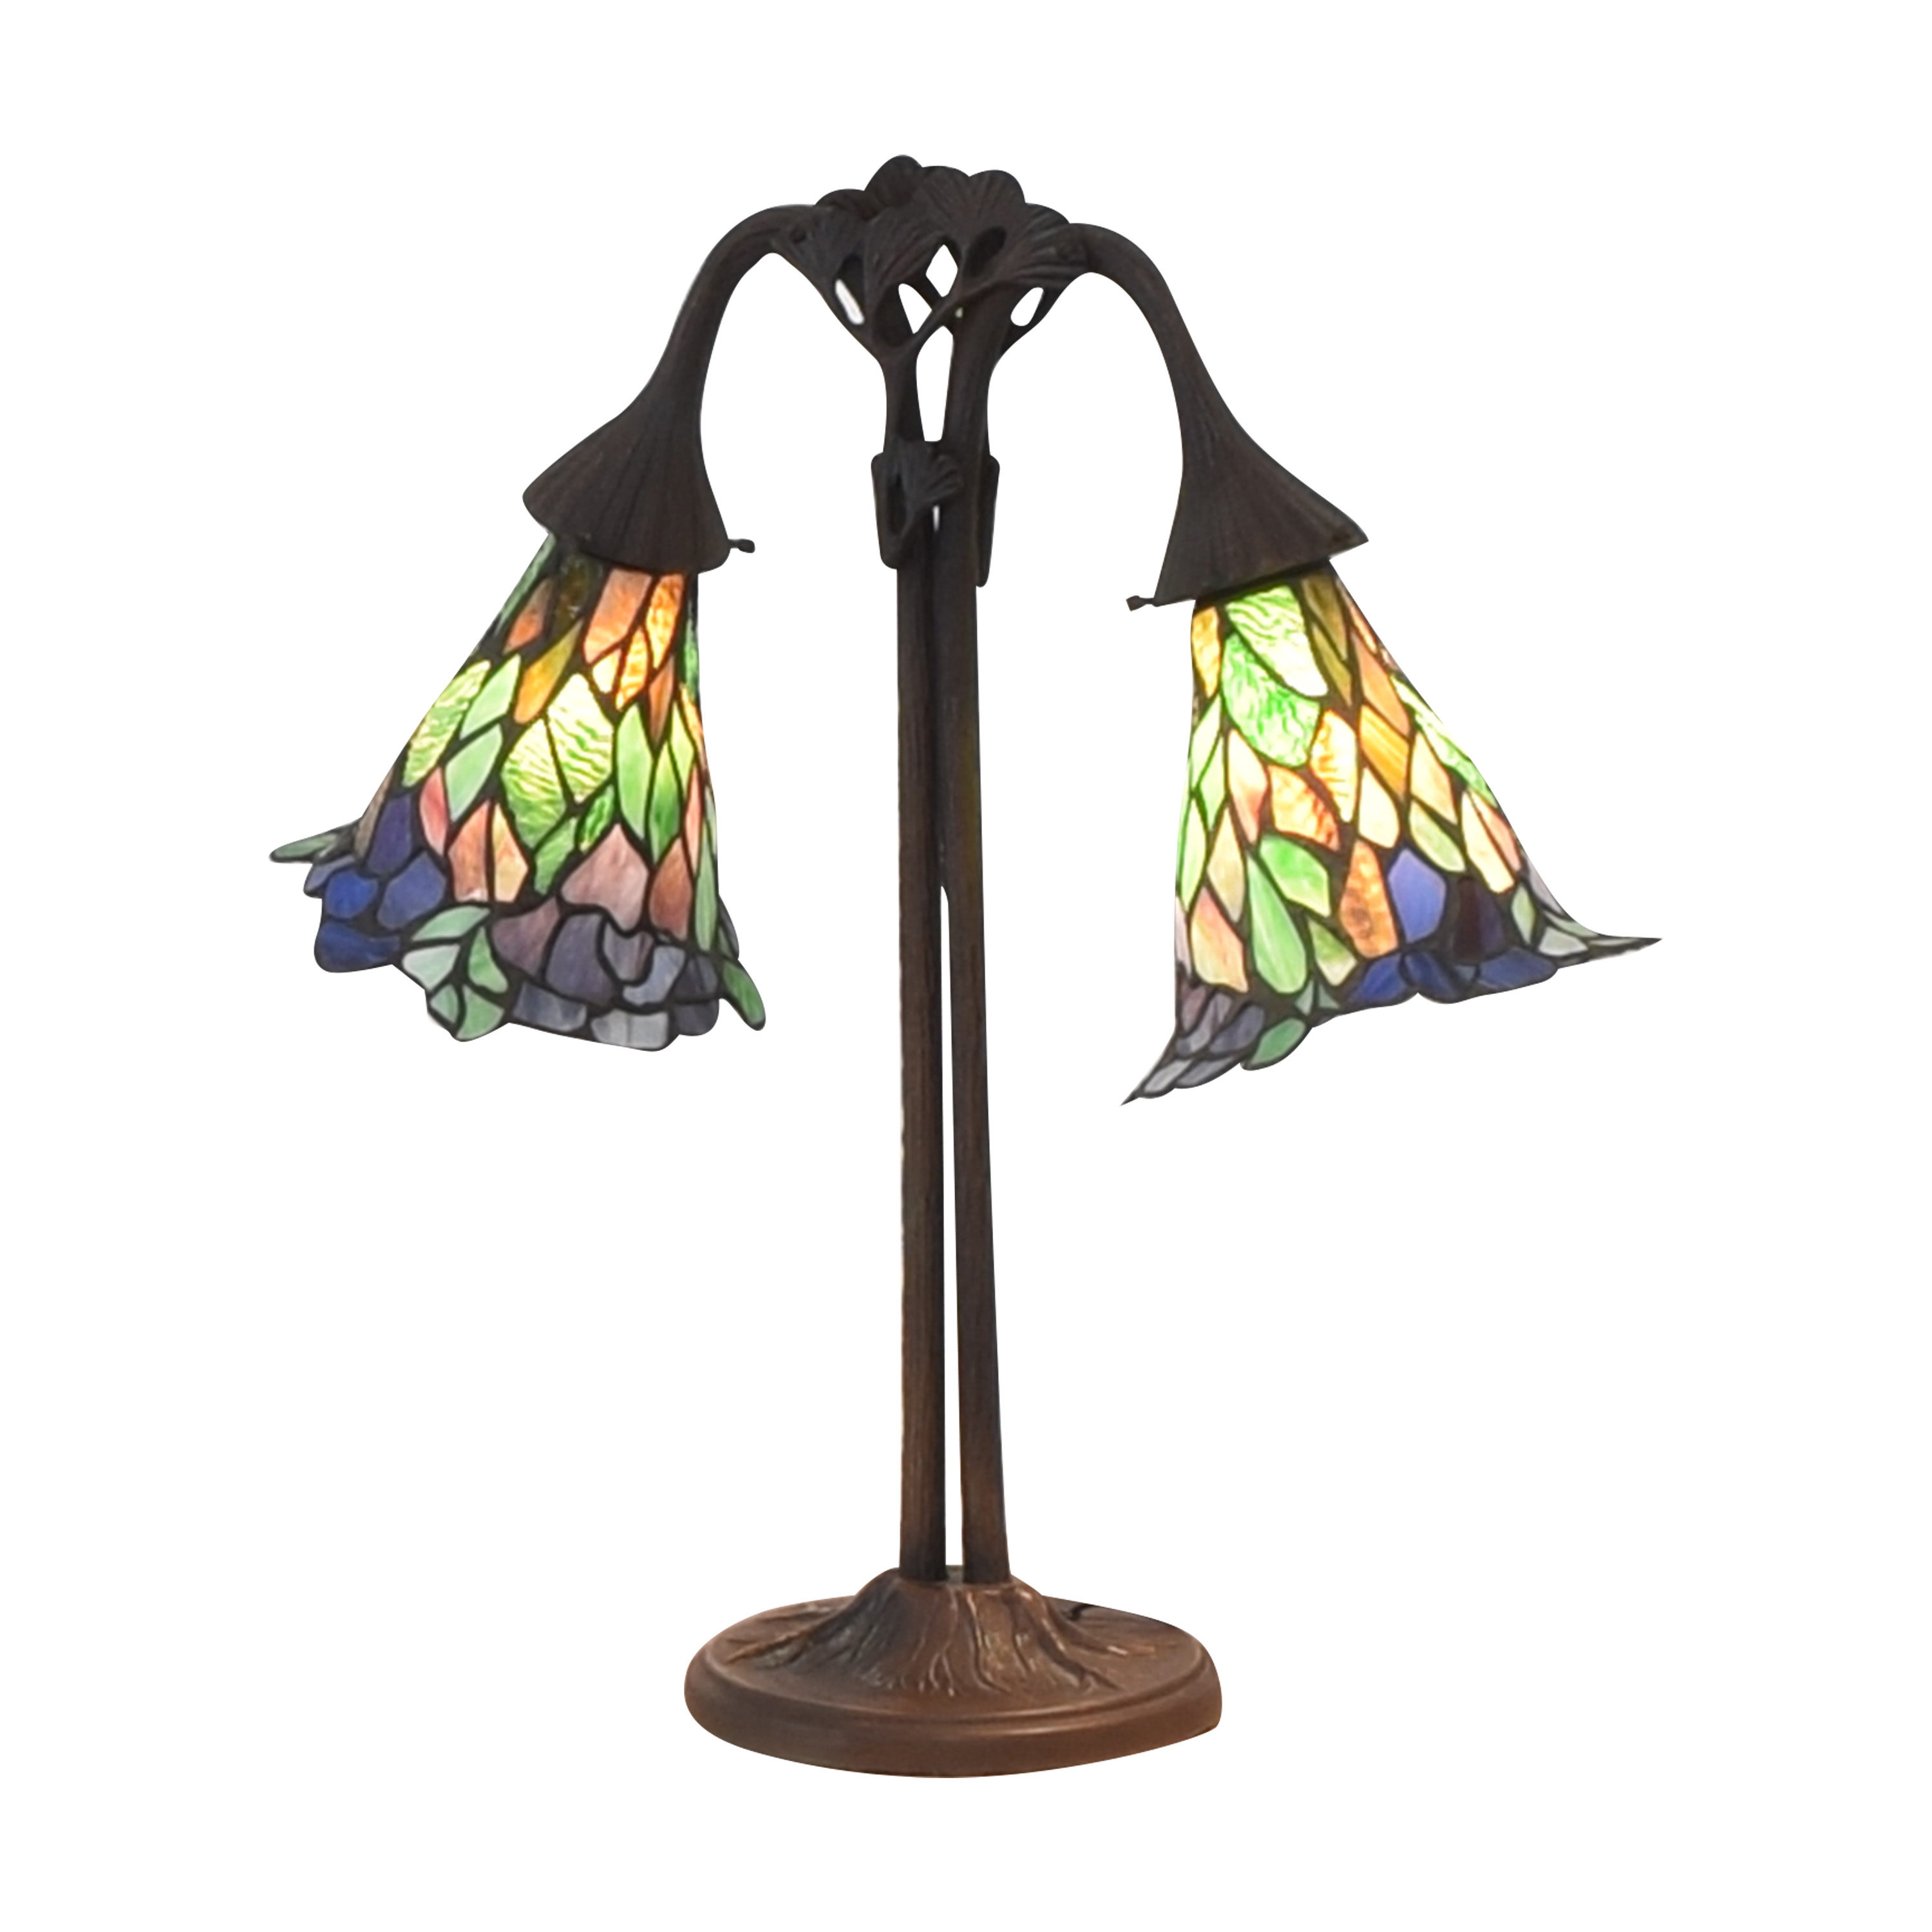 Double Table Lamp used